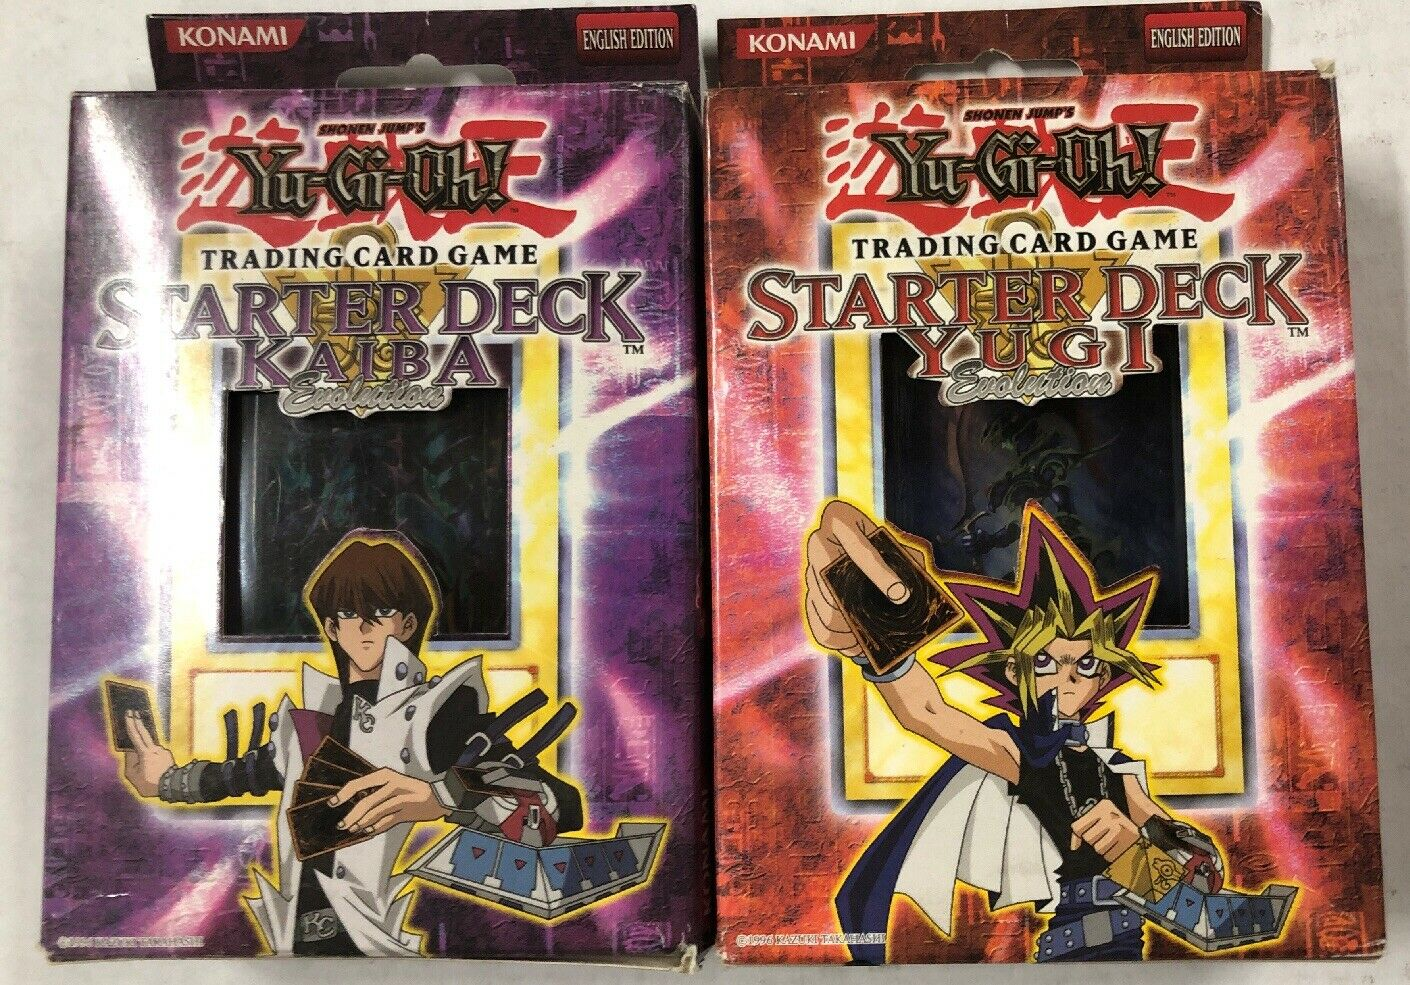 Yugioh Yugi Kaiba Evolution Structure Theme Decks For Card Game CCG TCG